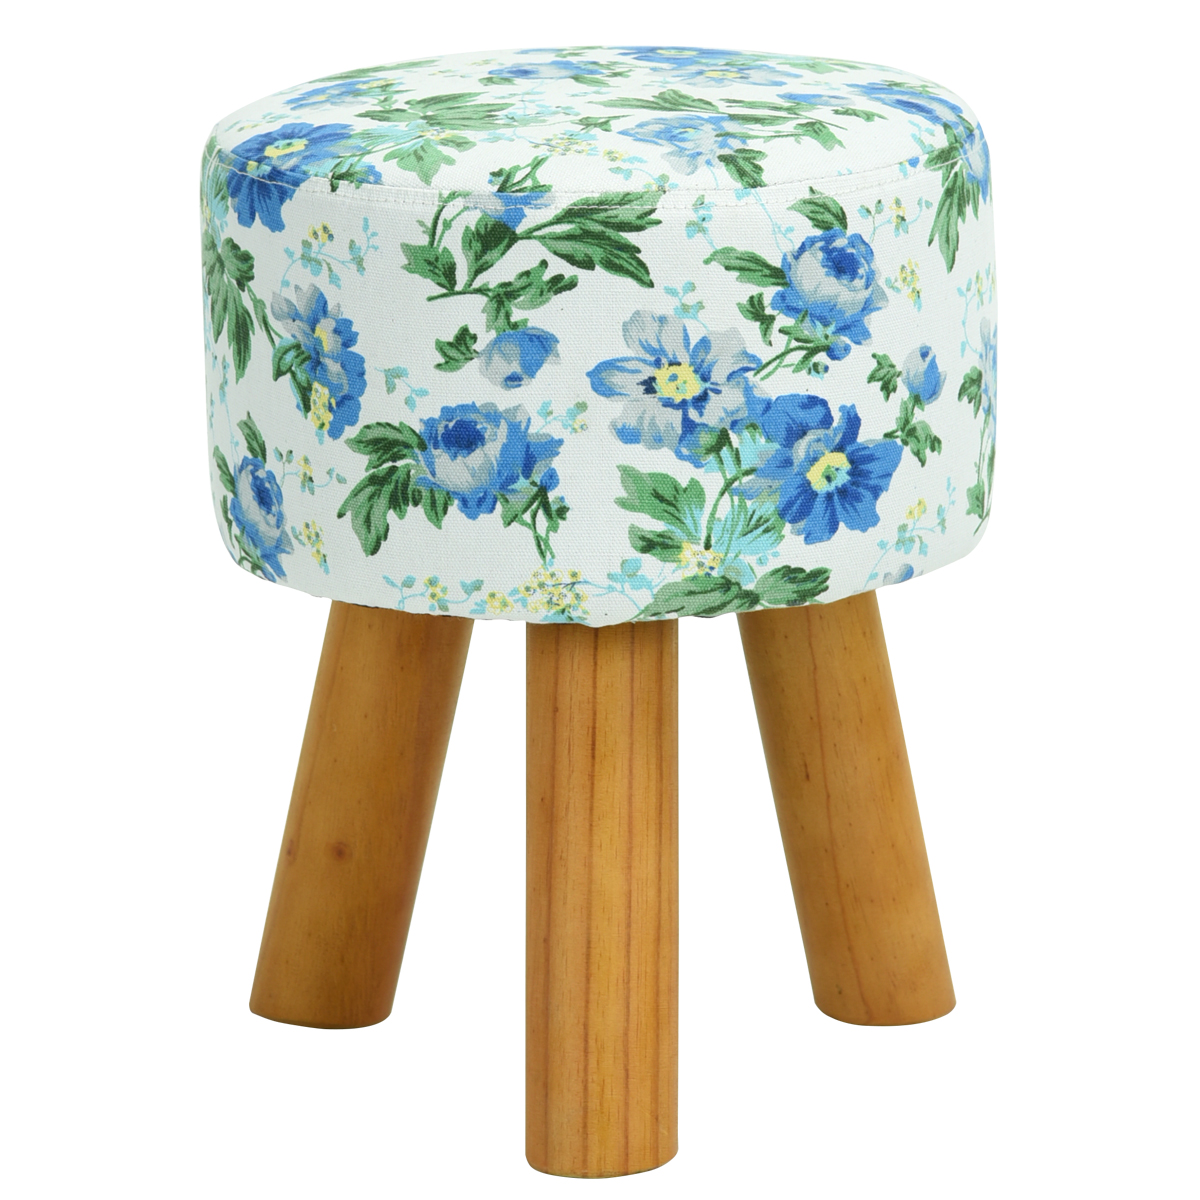 Floral Blue Round Ottoman Small Foot Stool With Wood Legs Foot Rest Seat  sc 1 st  eBay & Floral Blue Round Ottoman Small Foot Stool With Wood Legs Foot ... islam-shia.org